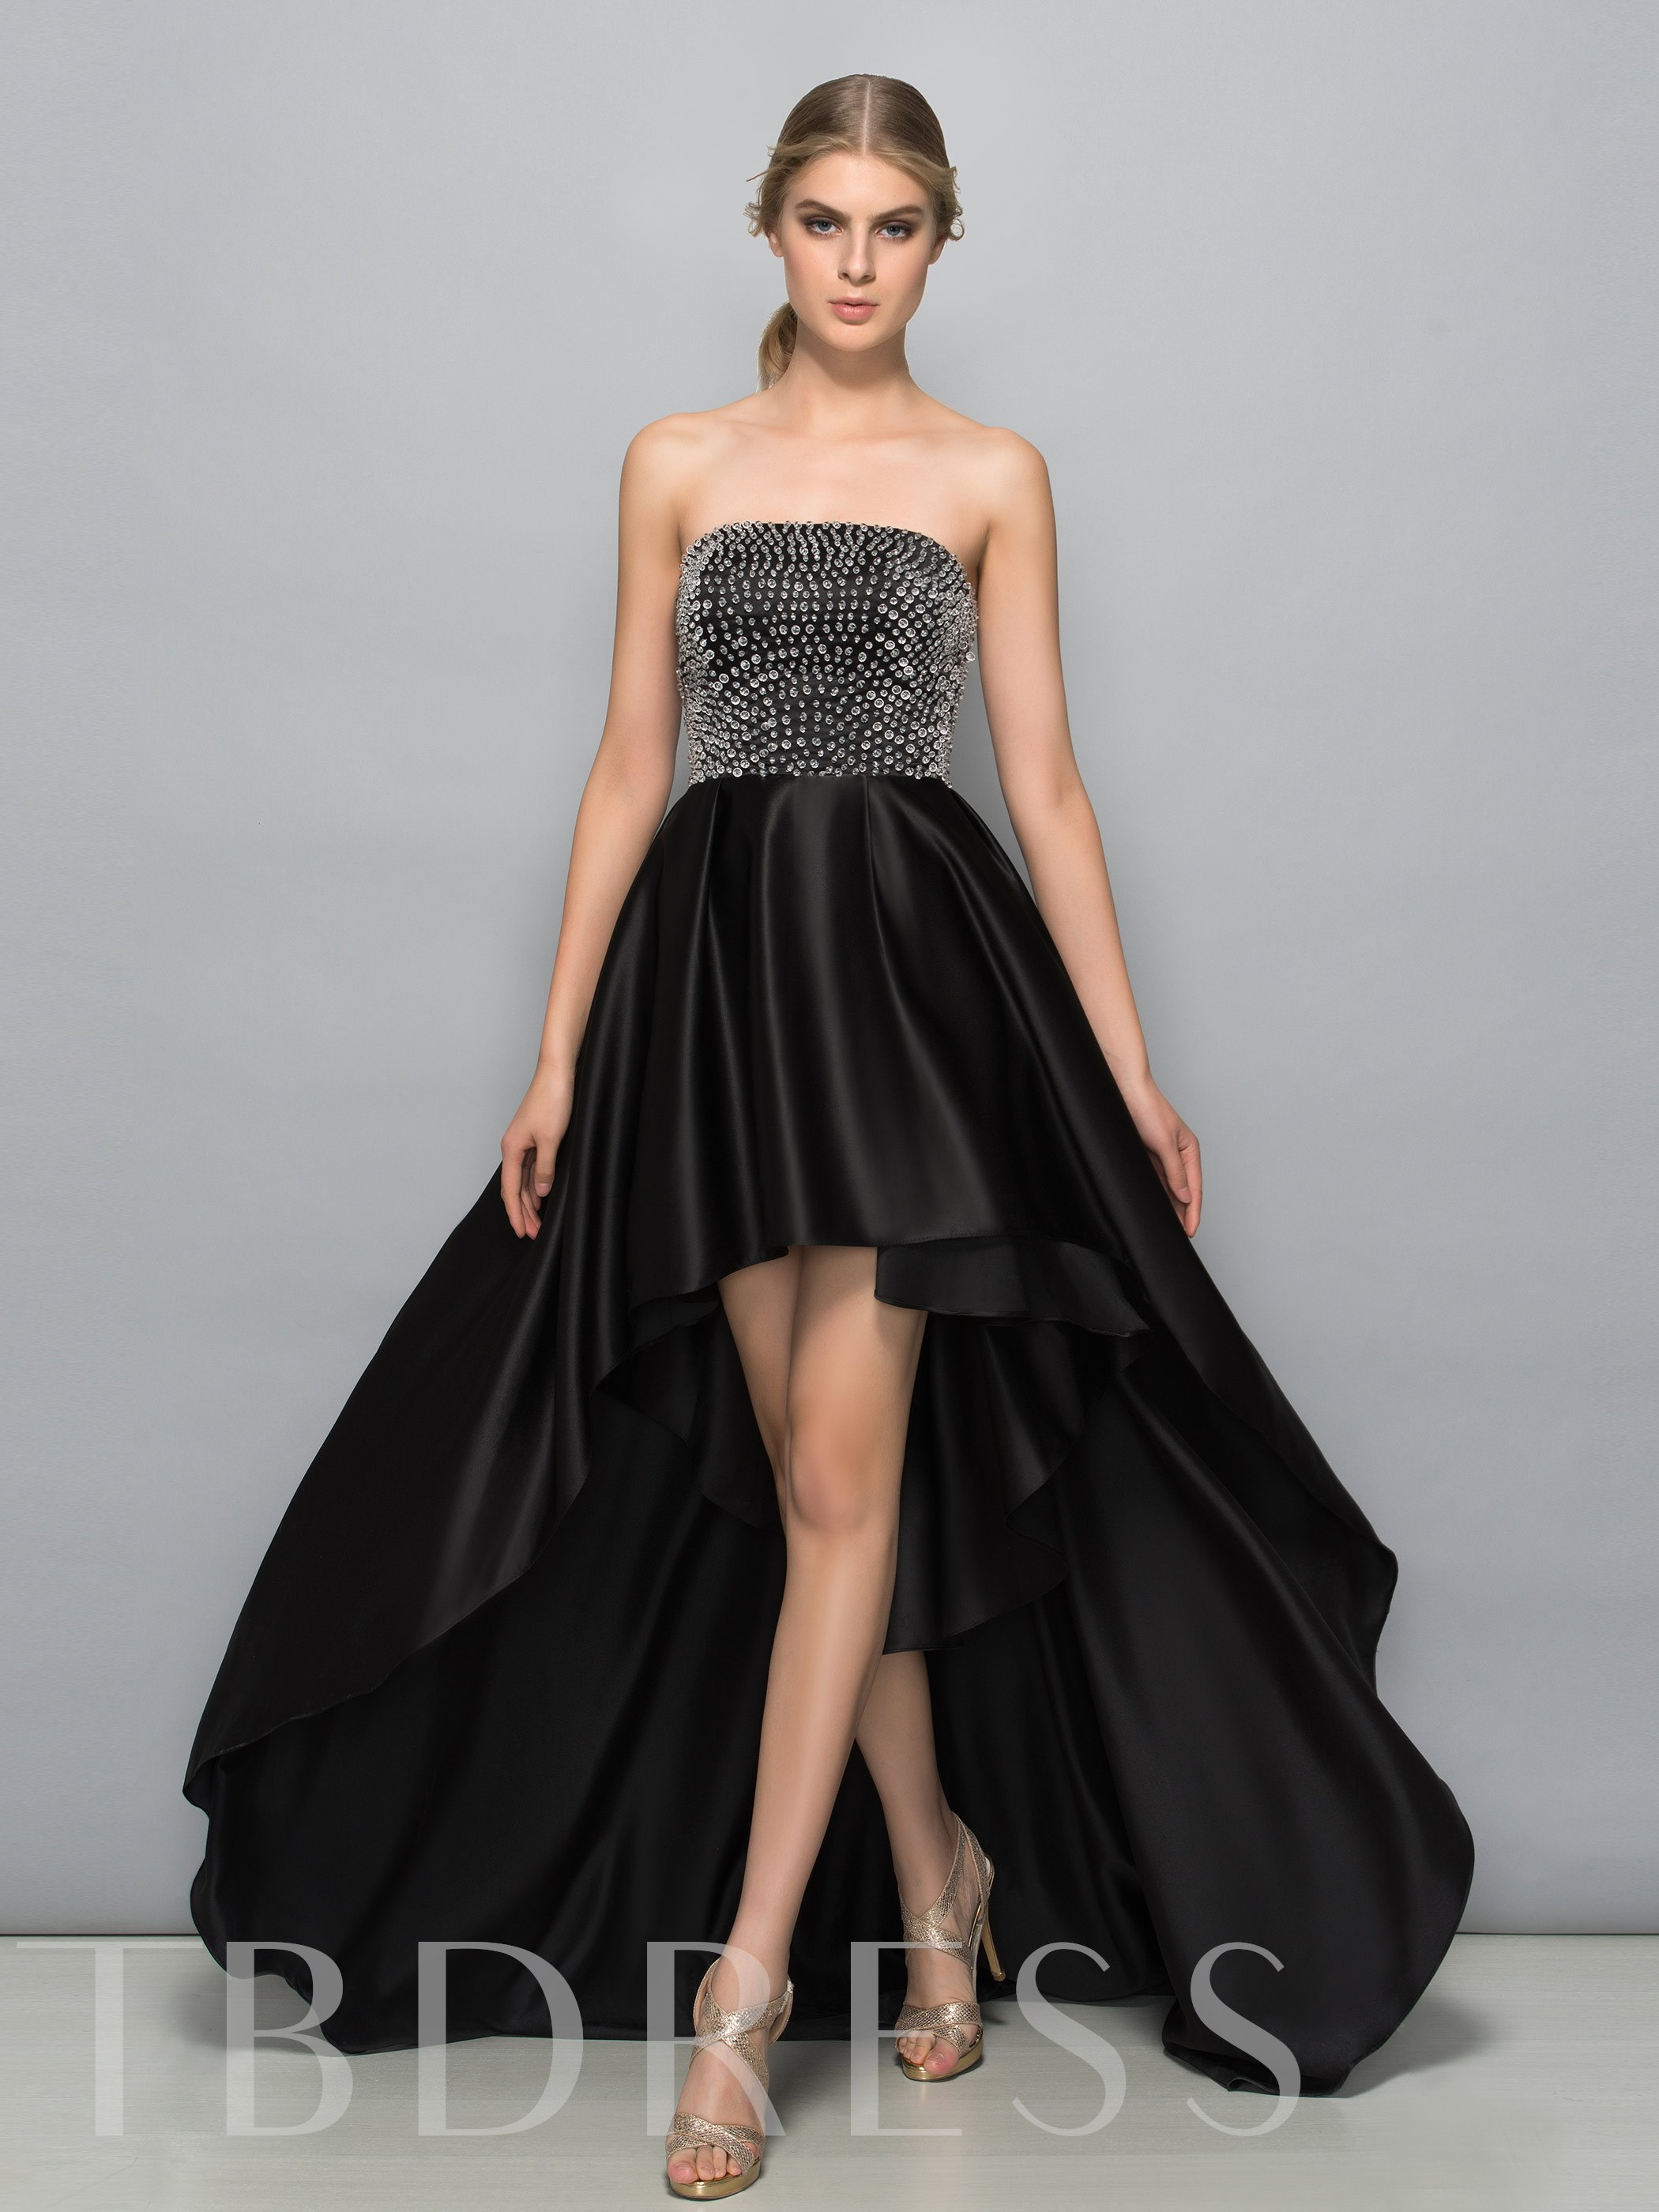 A-Line Strapless Pearls High Low Prom Dress 11680370